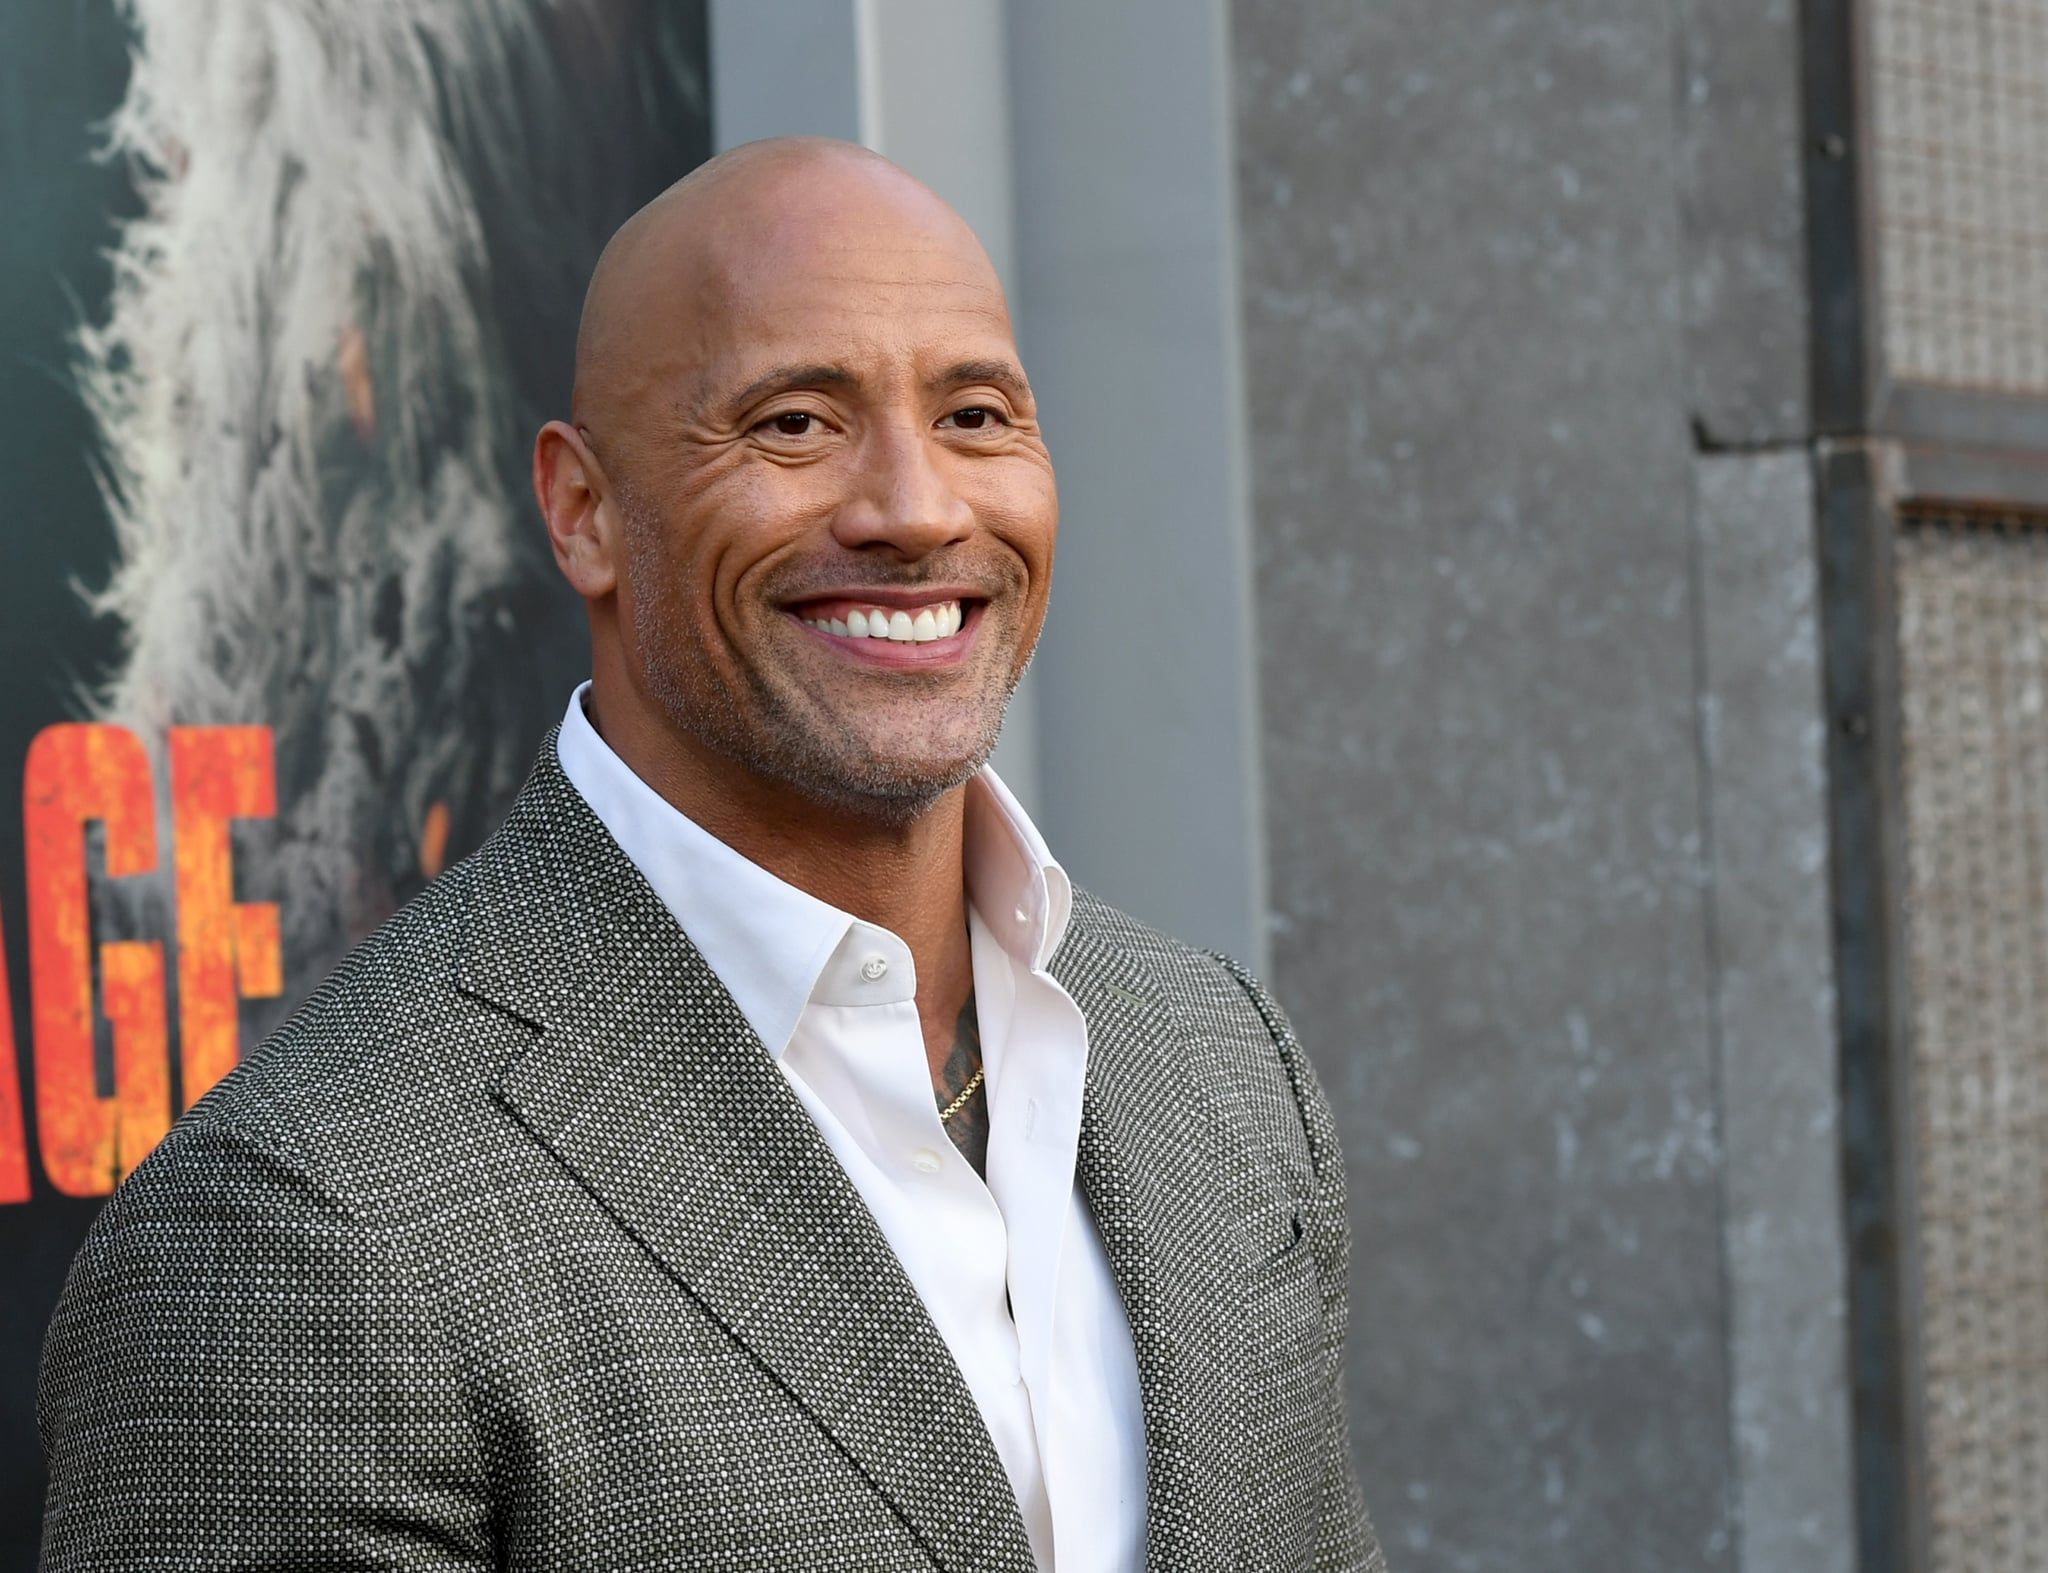 Dwayne Johnson Reveals How He Deals With Sadness, and It's Totally Relatable